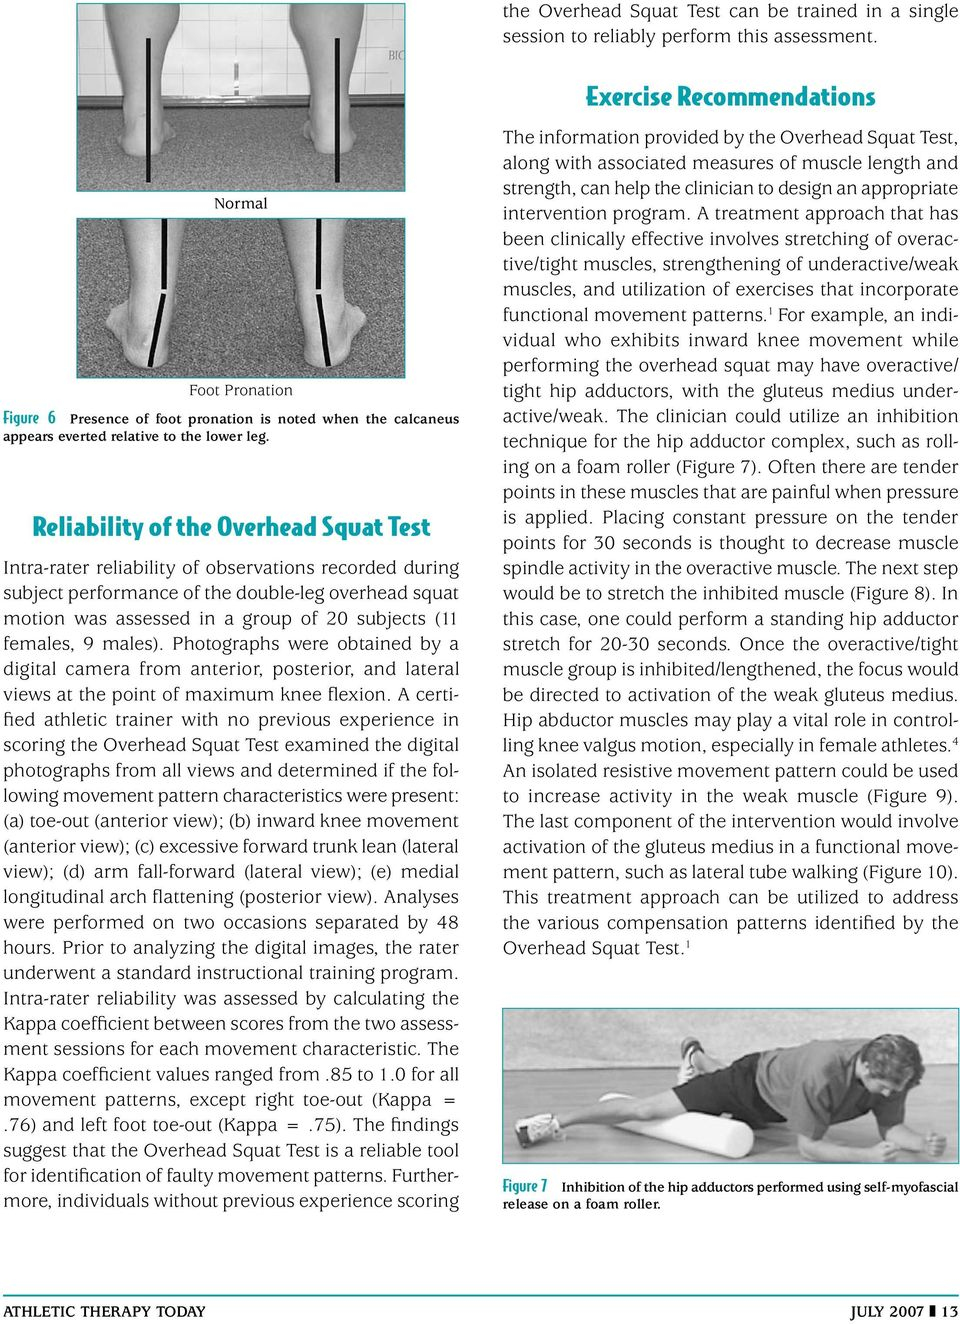 Clinical Movement Analysis to Identify Muscle Imbalances and